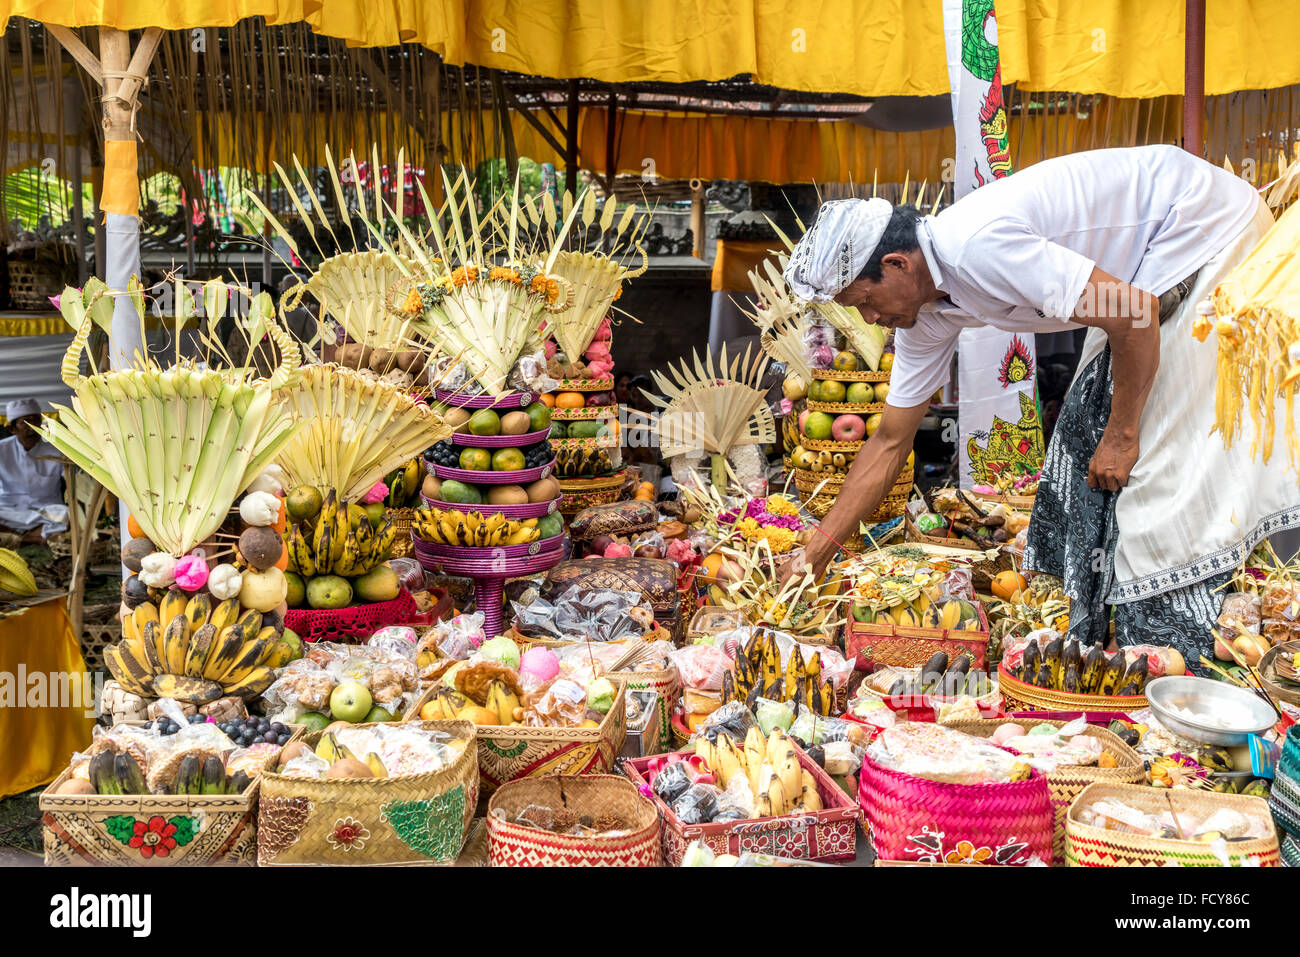 baskets with fruit offerings at a temple ceremony in Lovina Bali, Indonesia - Stock Image